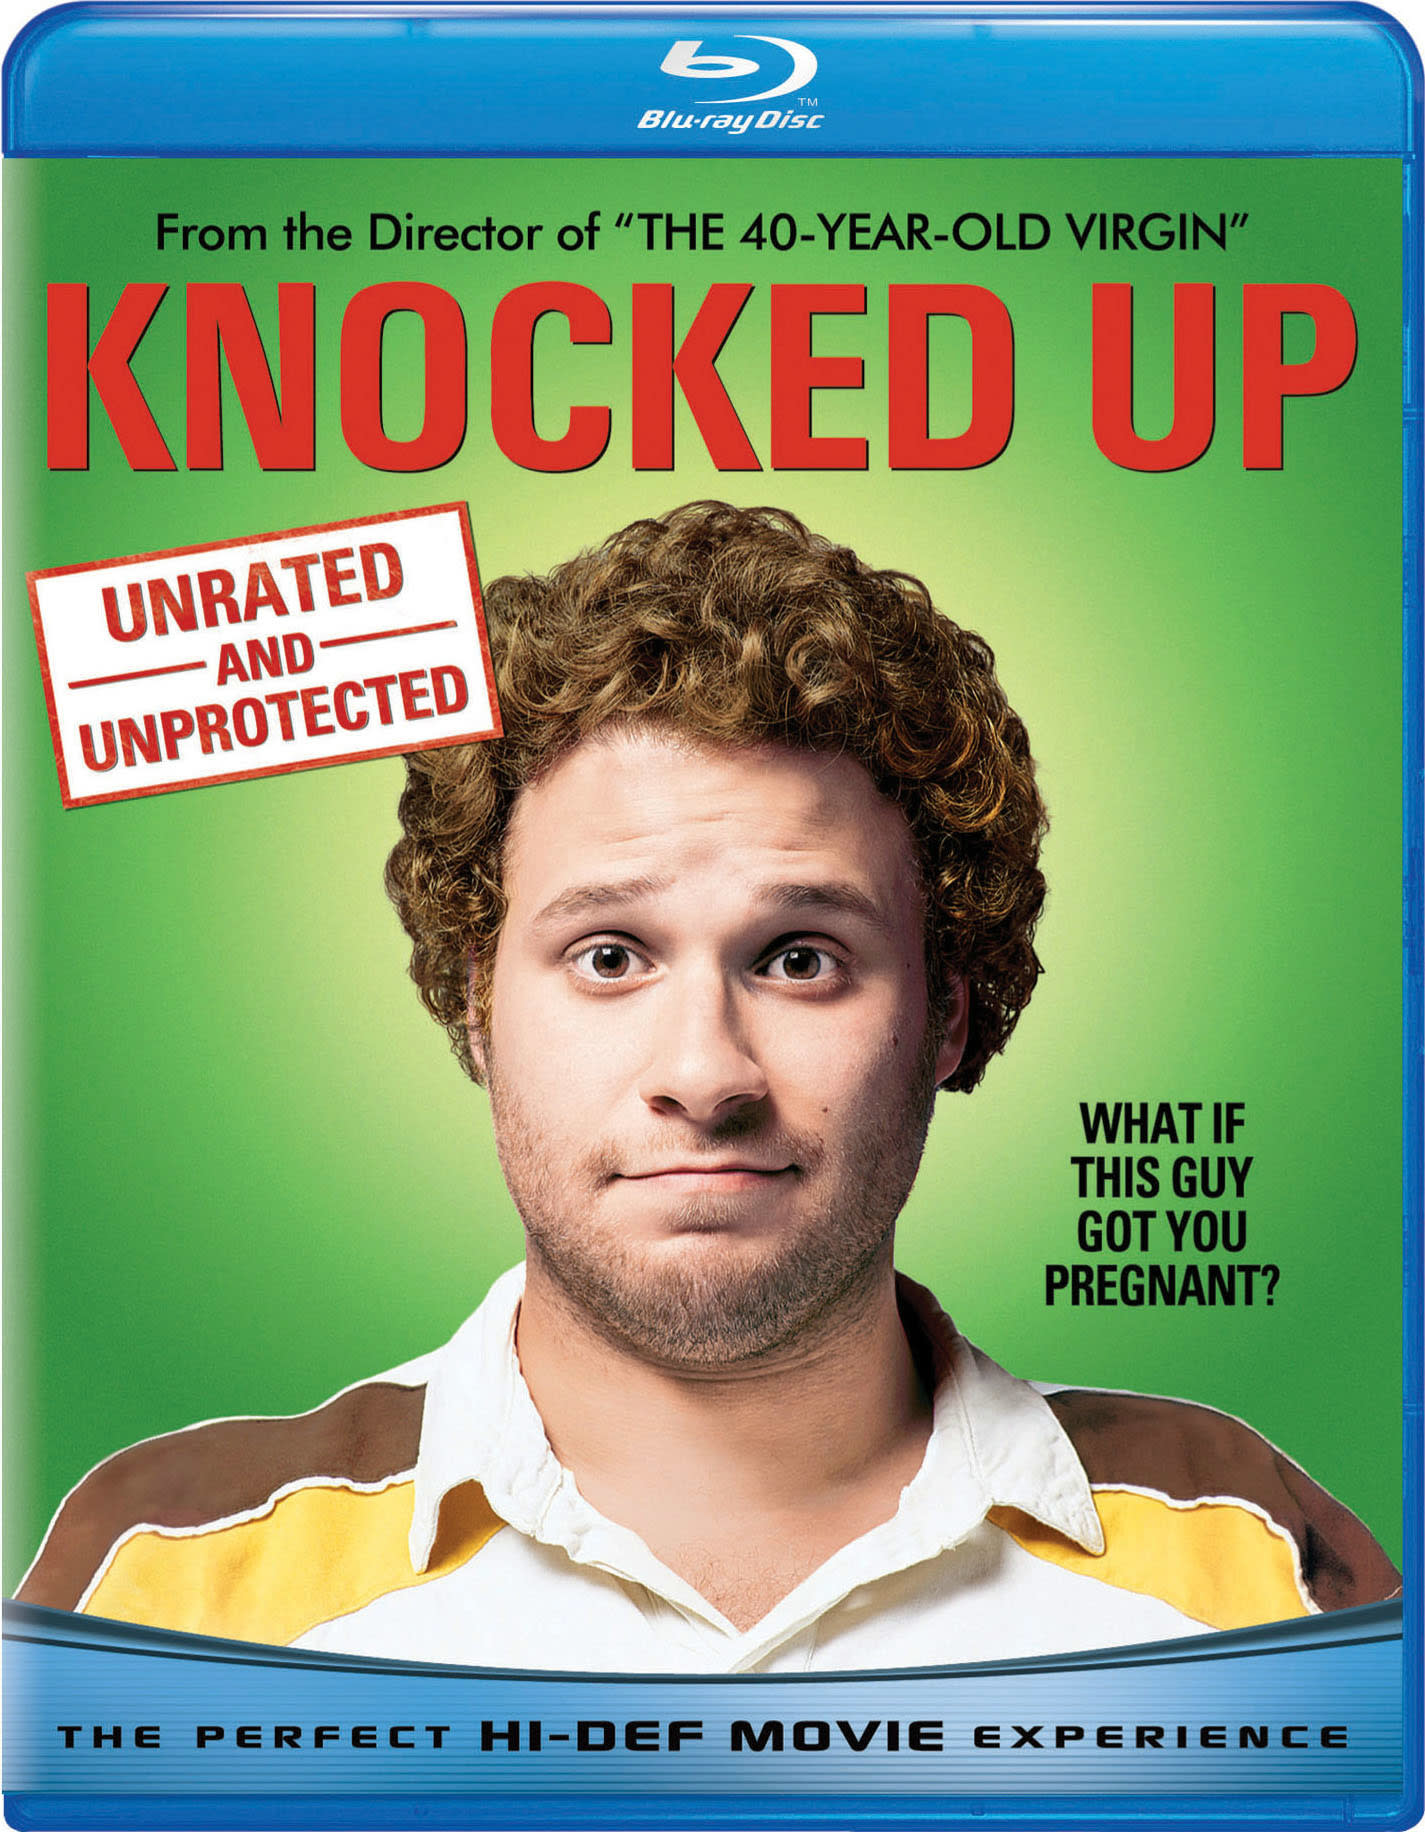 Knocked Up (Unrated And Unprotected Edition) [Blu-ray]